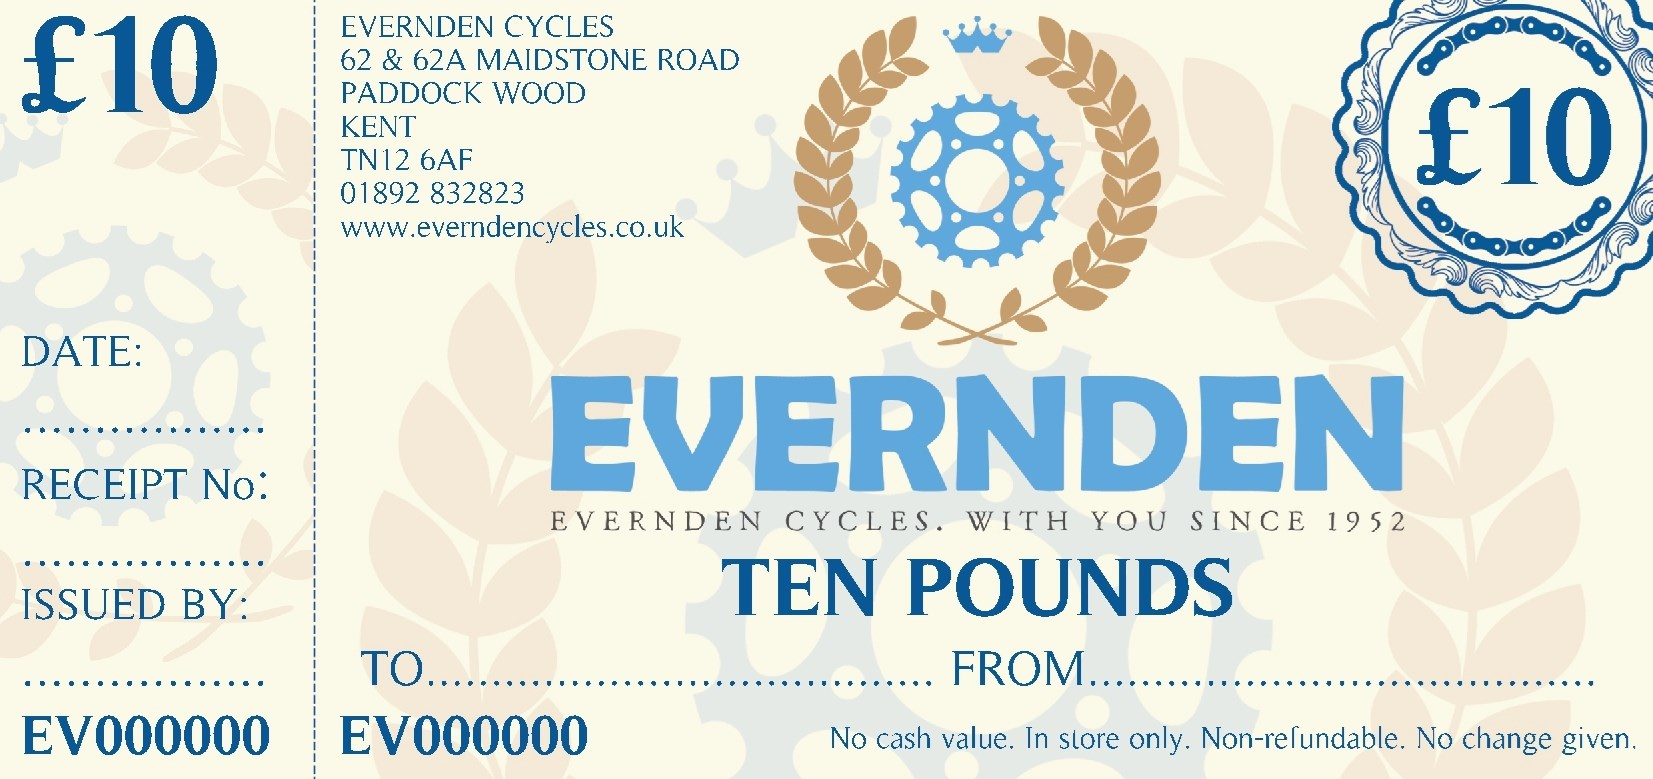 Evernden Cycles Gift Vouchers £10 00